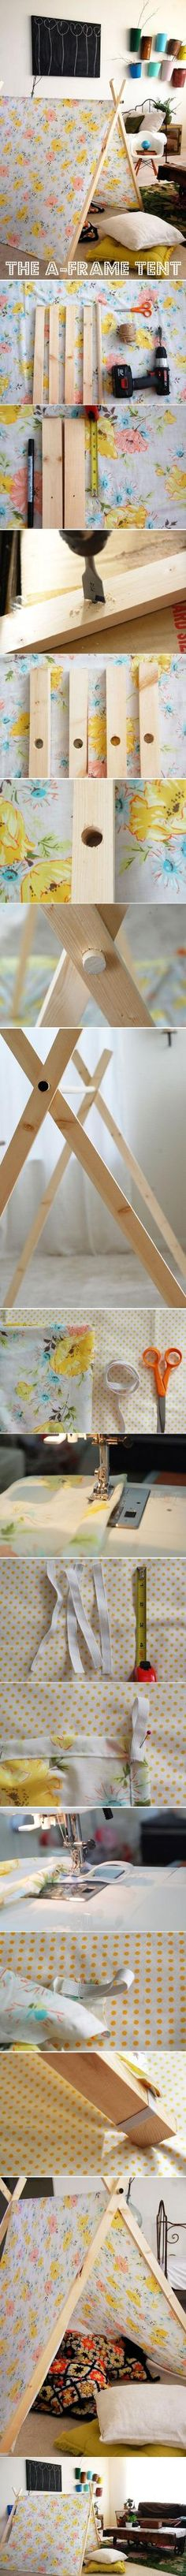 DIY Tutorial: A-Frame Tent by ammieiscool